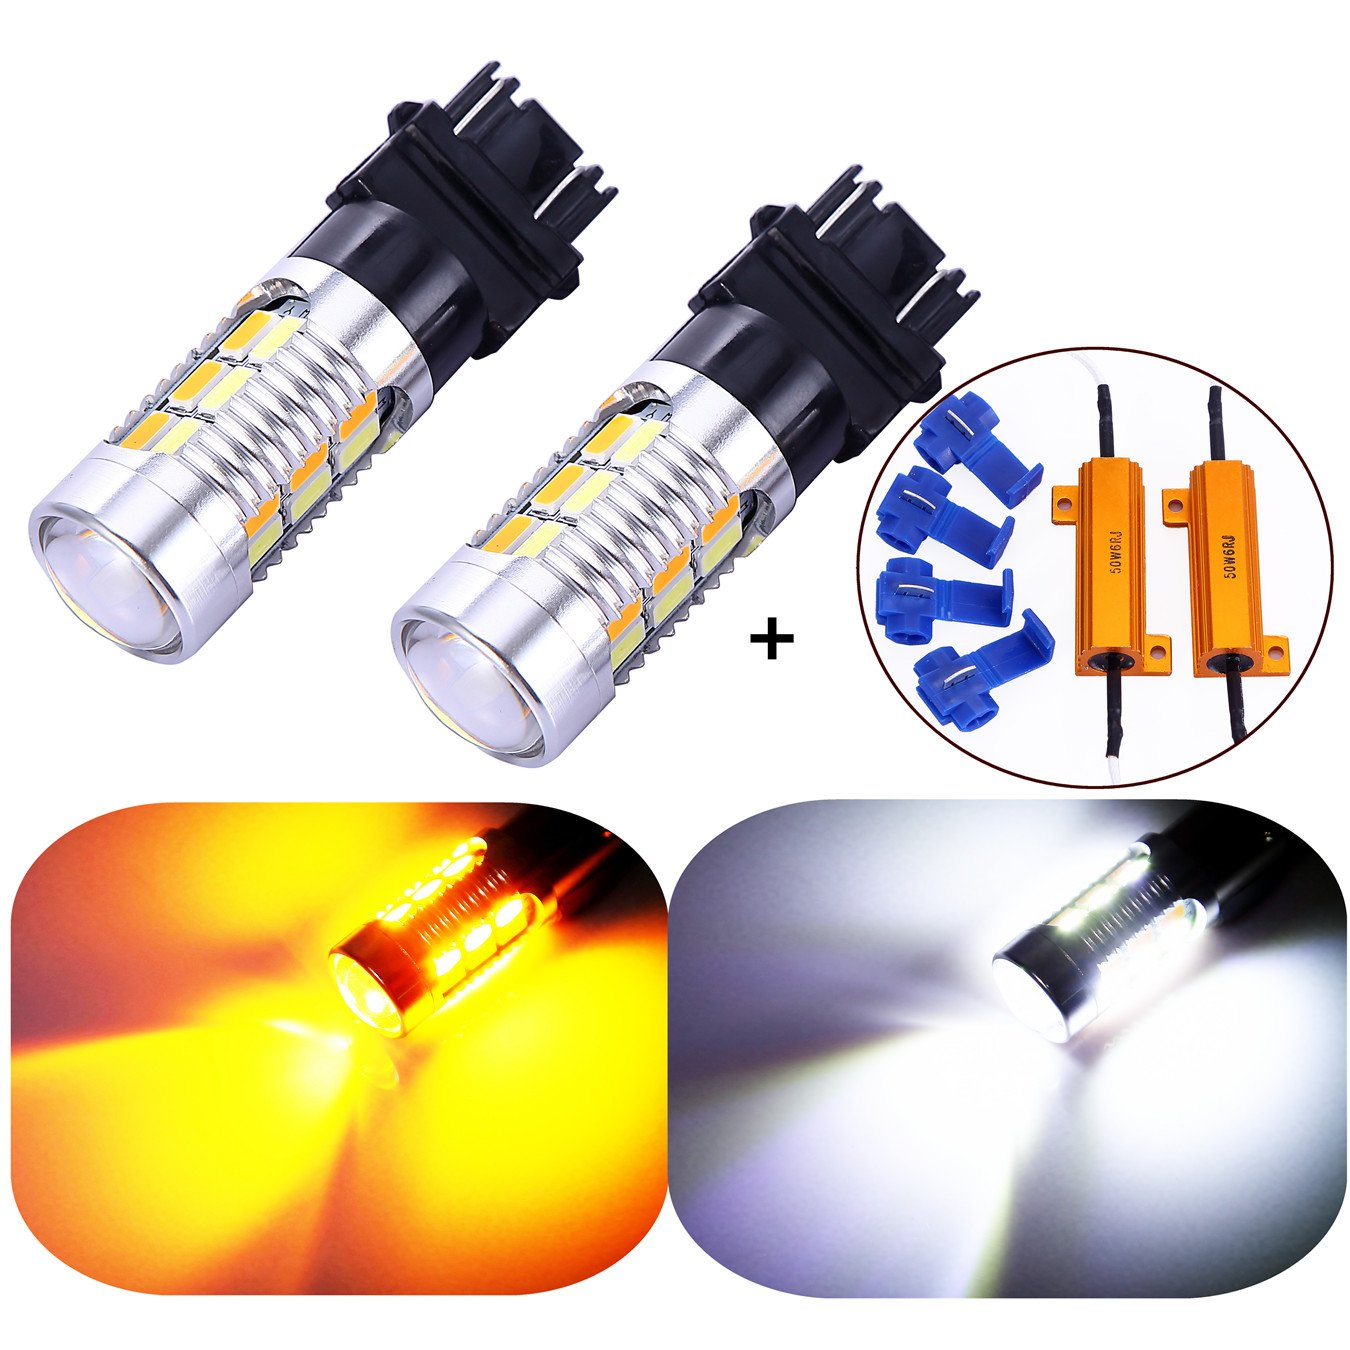 3157 3057 3357 4157 Turn Signal White/Yellow Switchback LED Light Bulbs 22 SMD with Projector, for Standard Socket, Not CK- Pair of 2 VOUKE US